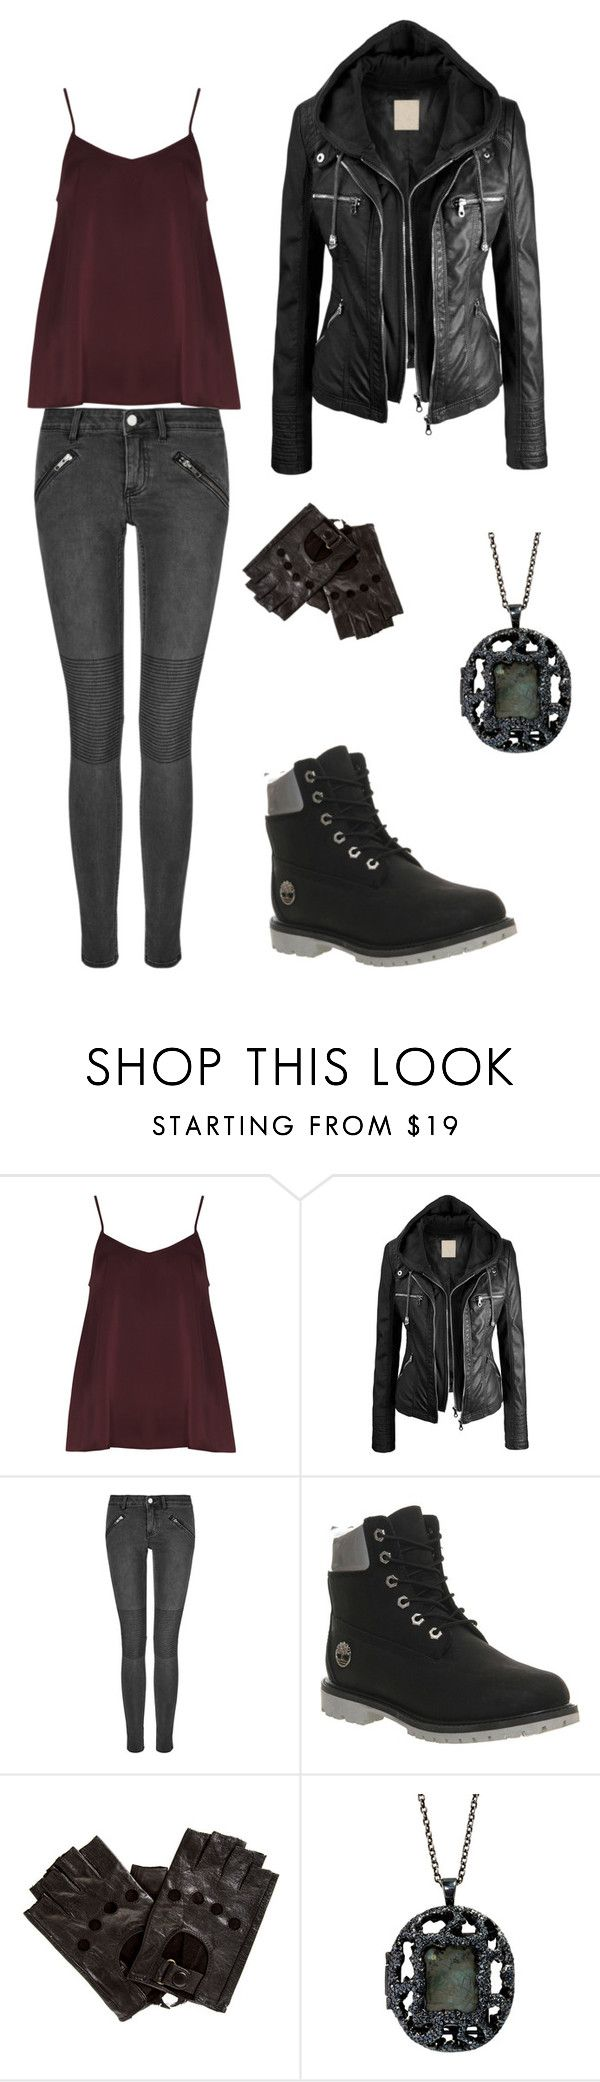 """""""Dauntless"""" by toughchicklett ❤ liked on Polyvore featuring Alice & You, BLK DNM, Timberland and Antonym"""